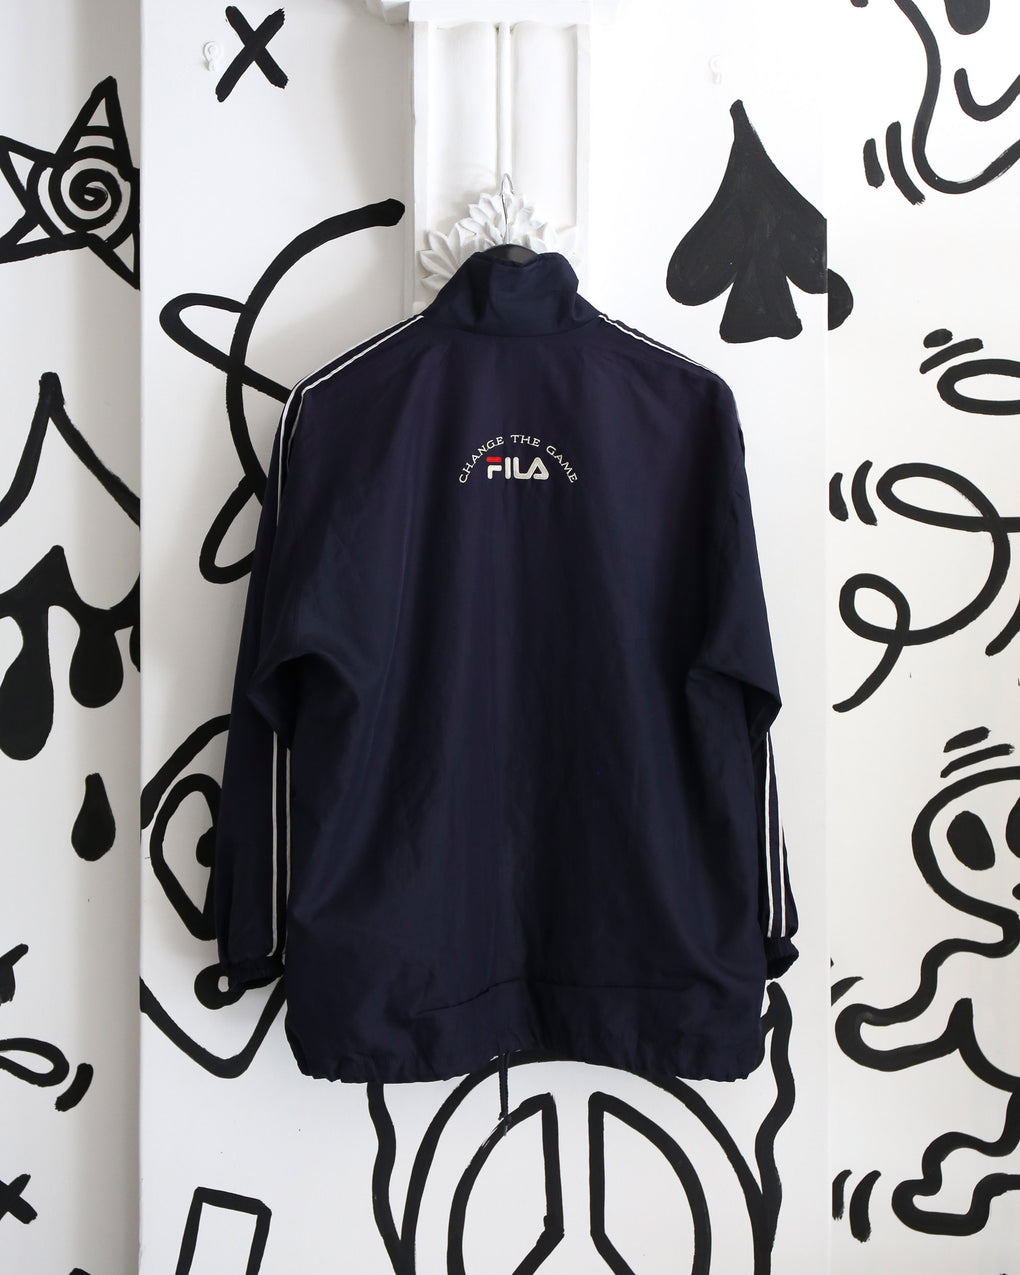 FILA 'Change The Game' Sports Jacket - FROTHLYF